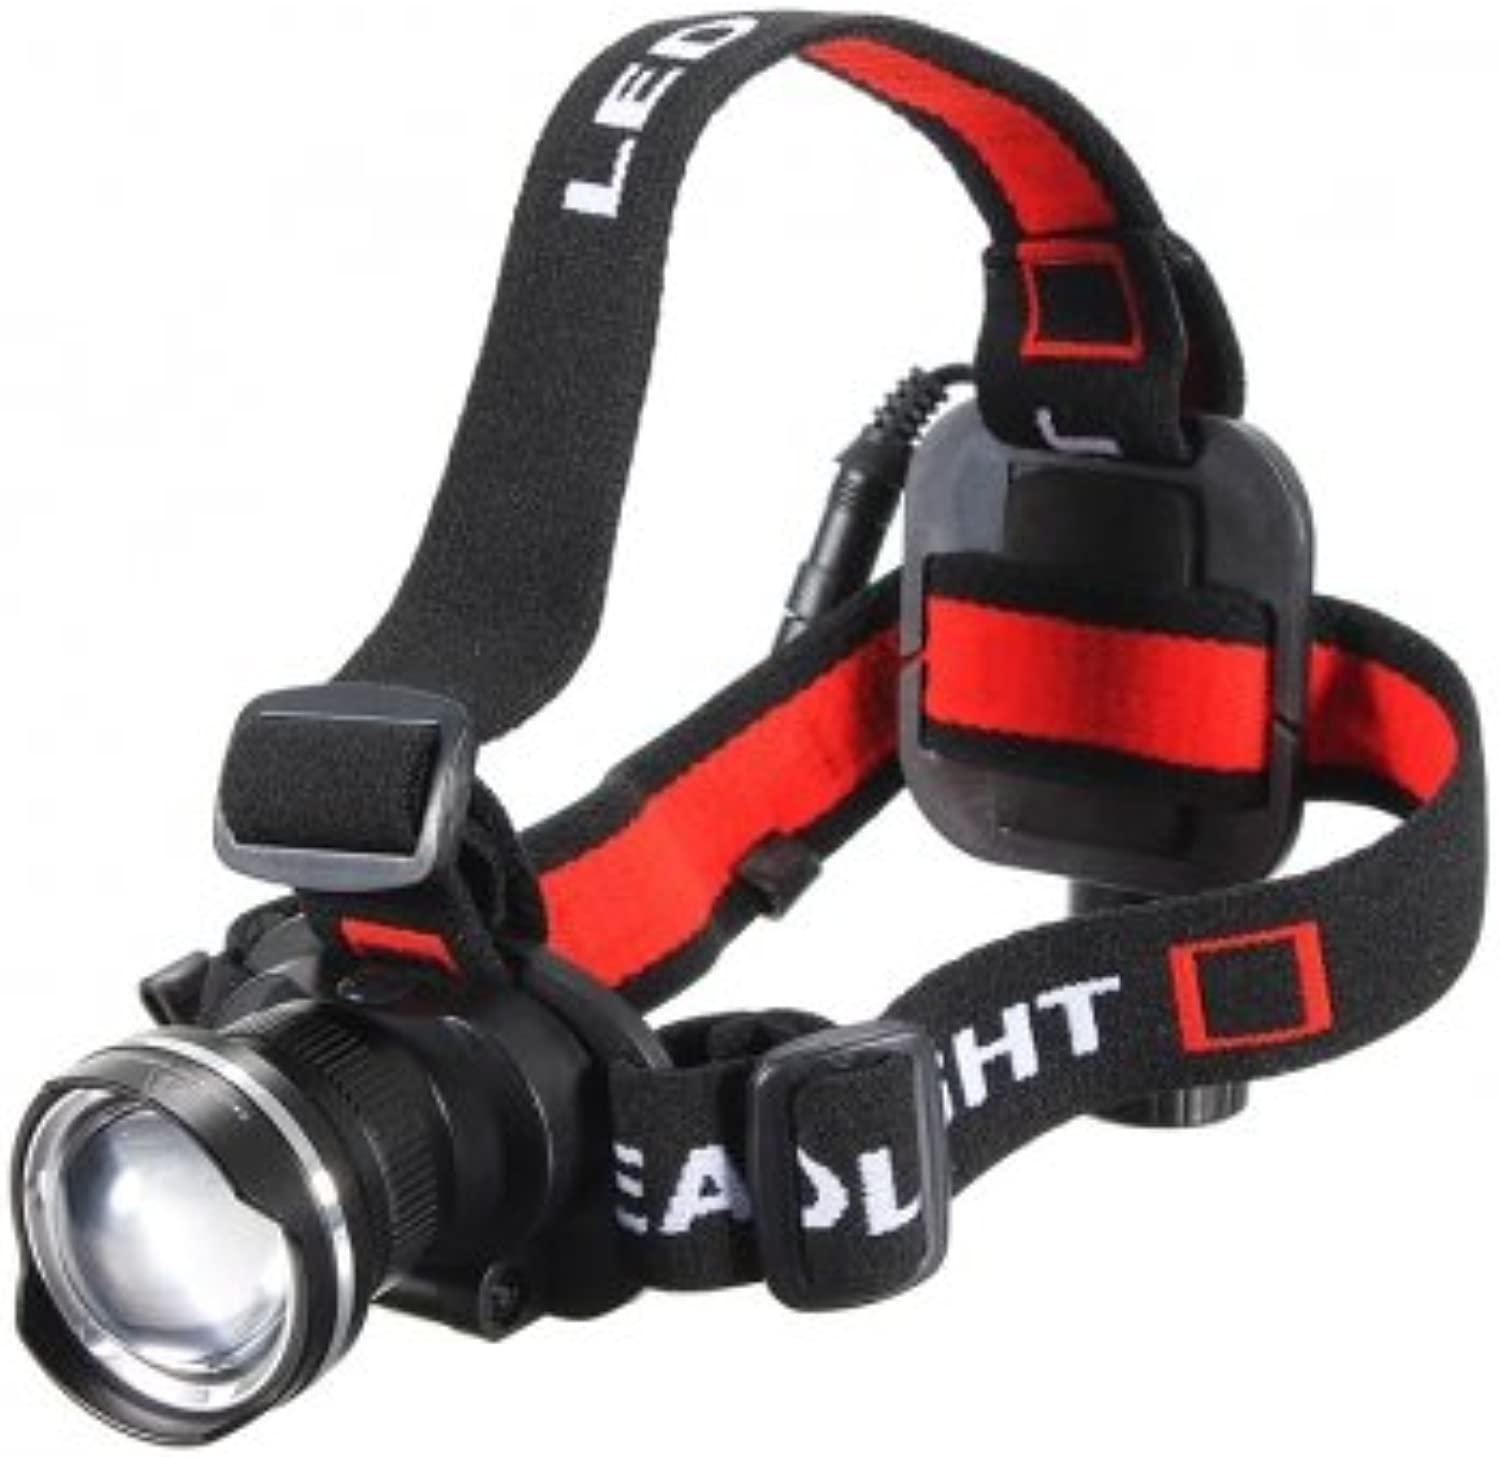 Bheema Bike Bicycle CREE T6 LED 1600Lm Rechargeable Zoomable Headlight  Black